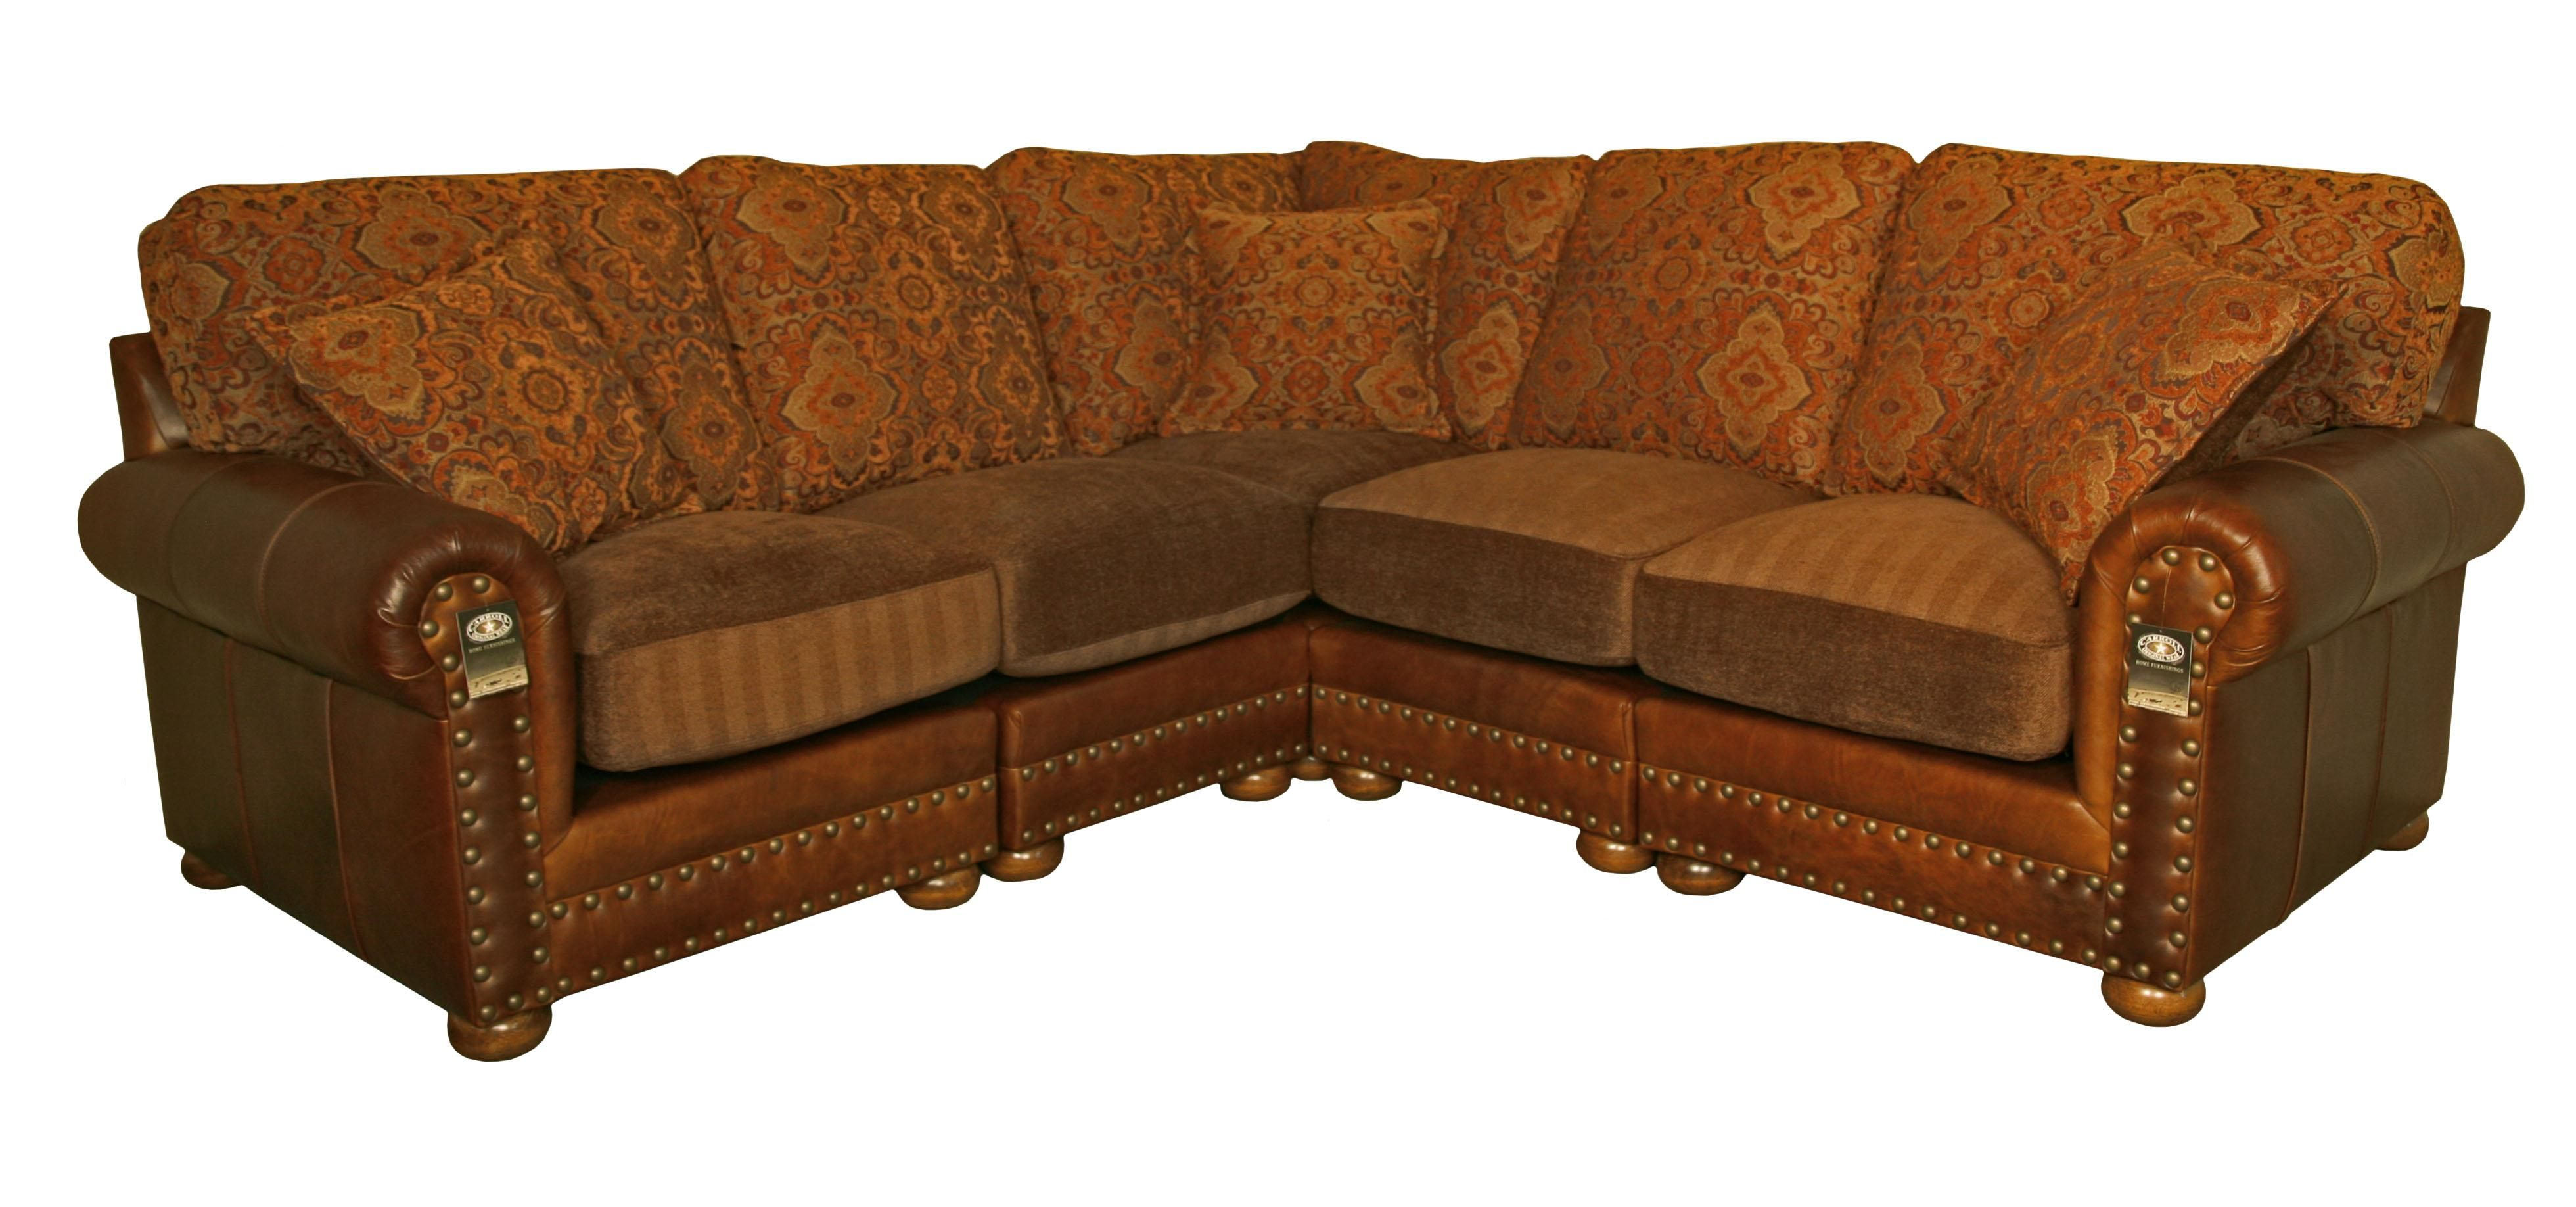 Hinsdale Sectional Sofa In Weston Pecan Leather Saloon Rust